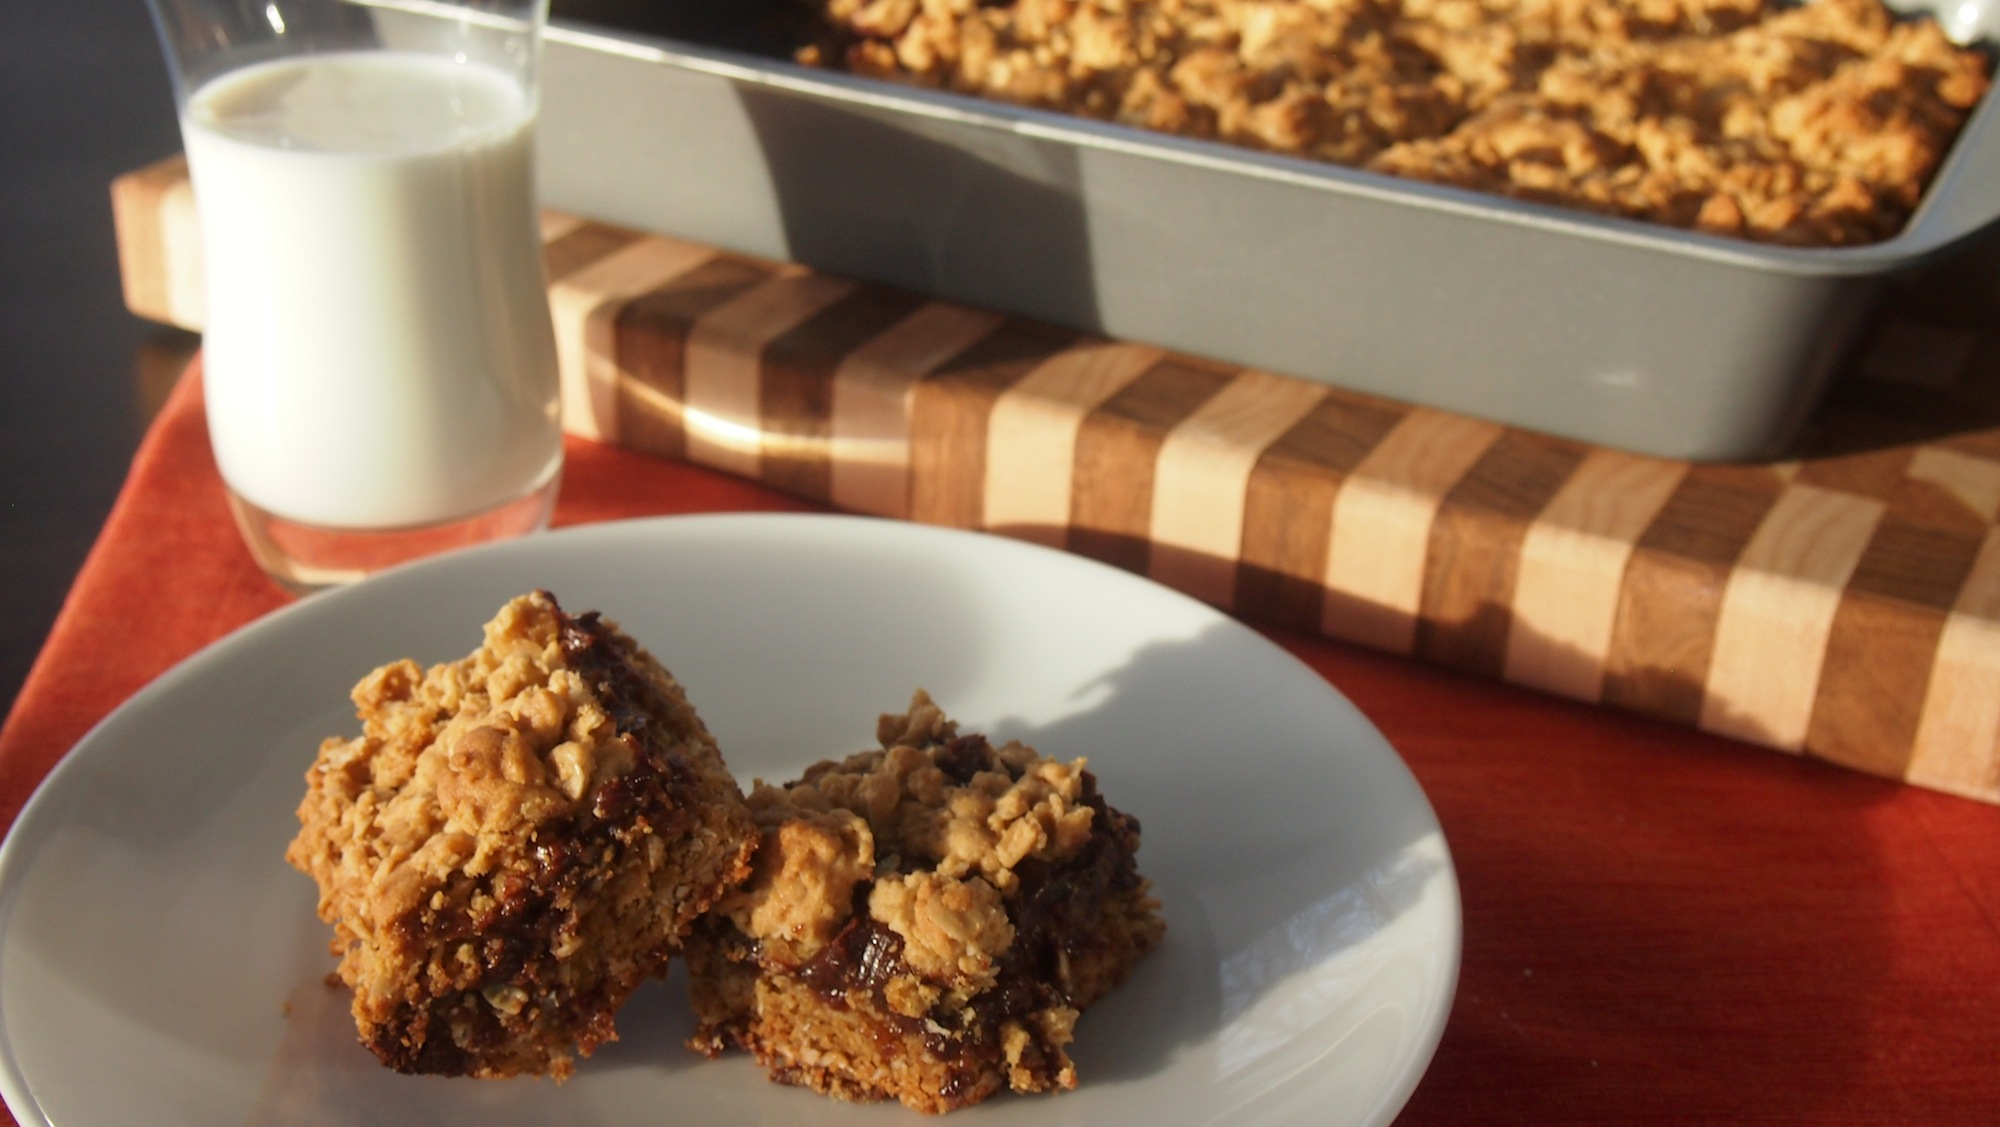 Chocolate revel bars with milk.